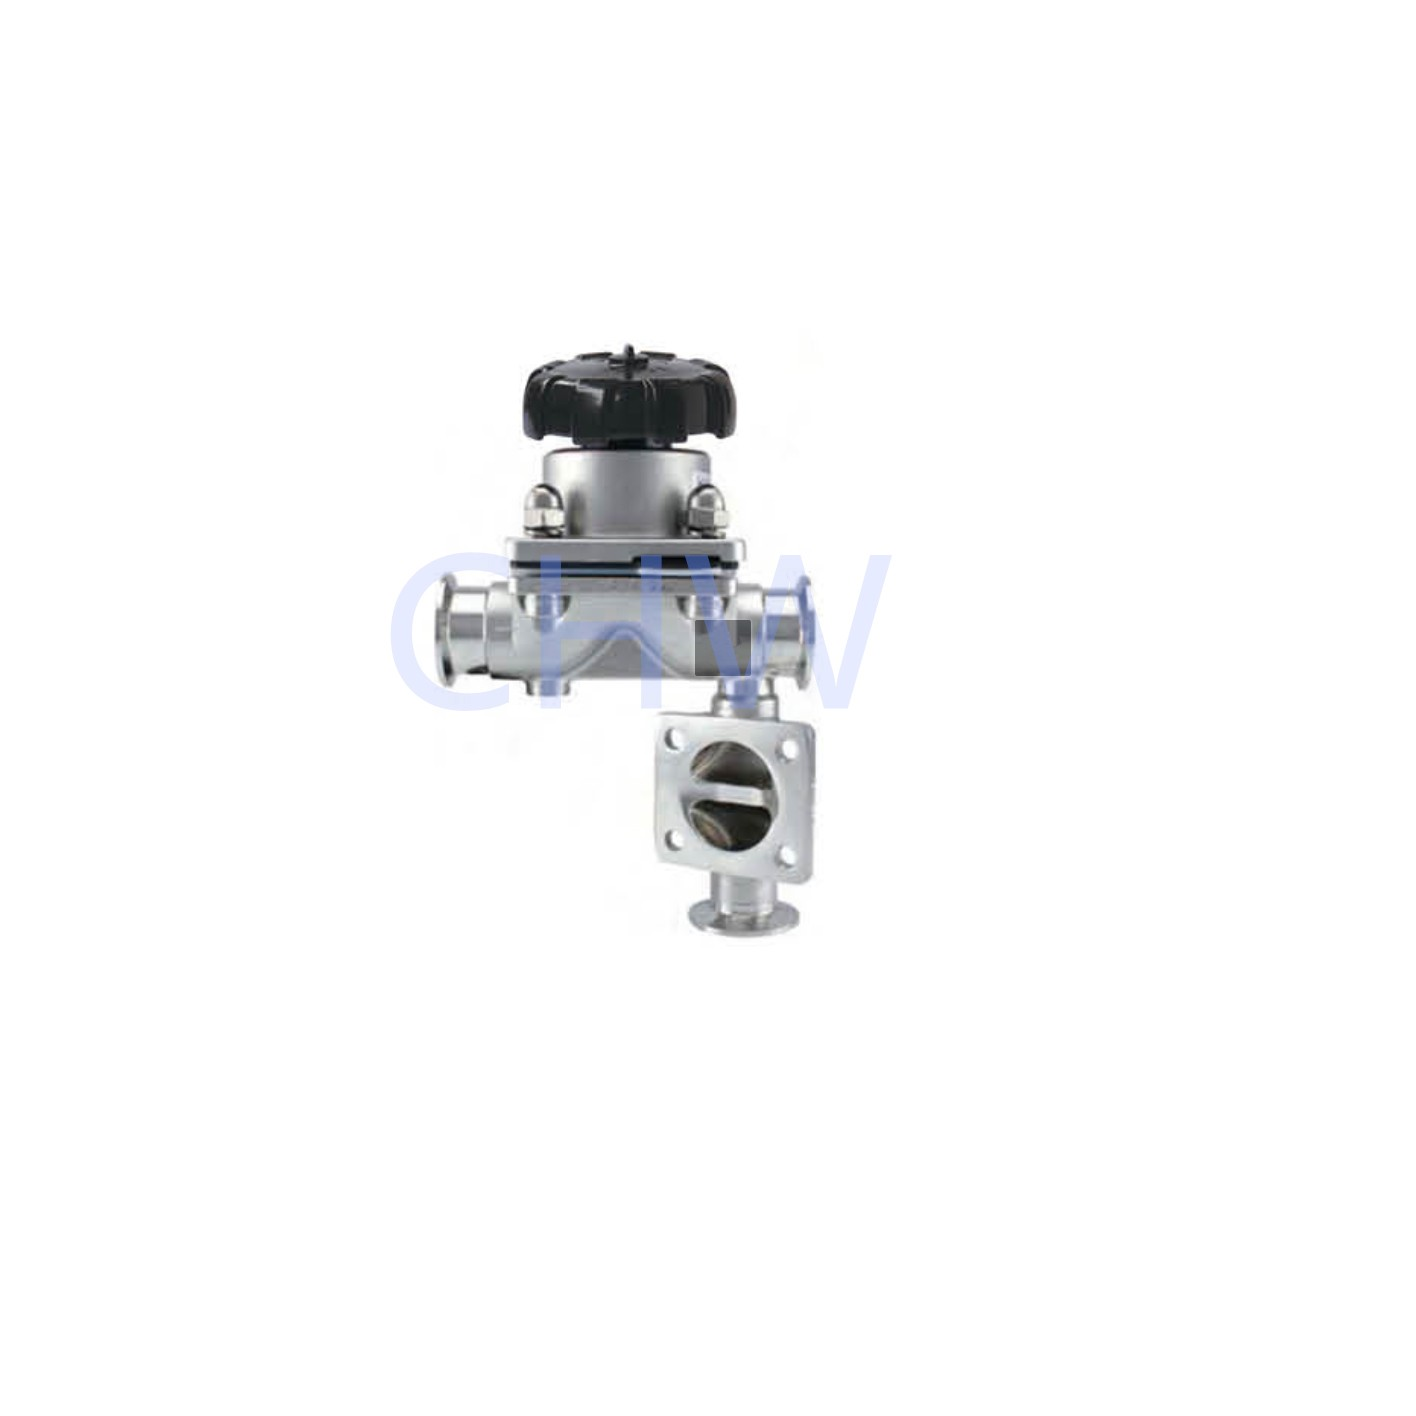 Sanitary stainless steel high quality Series Diaphragm Valve ss304 ss316L DIN SMS ISO 3A BPE IDF AS BS